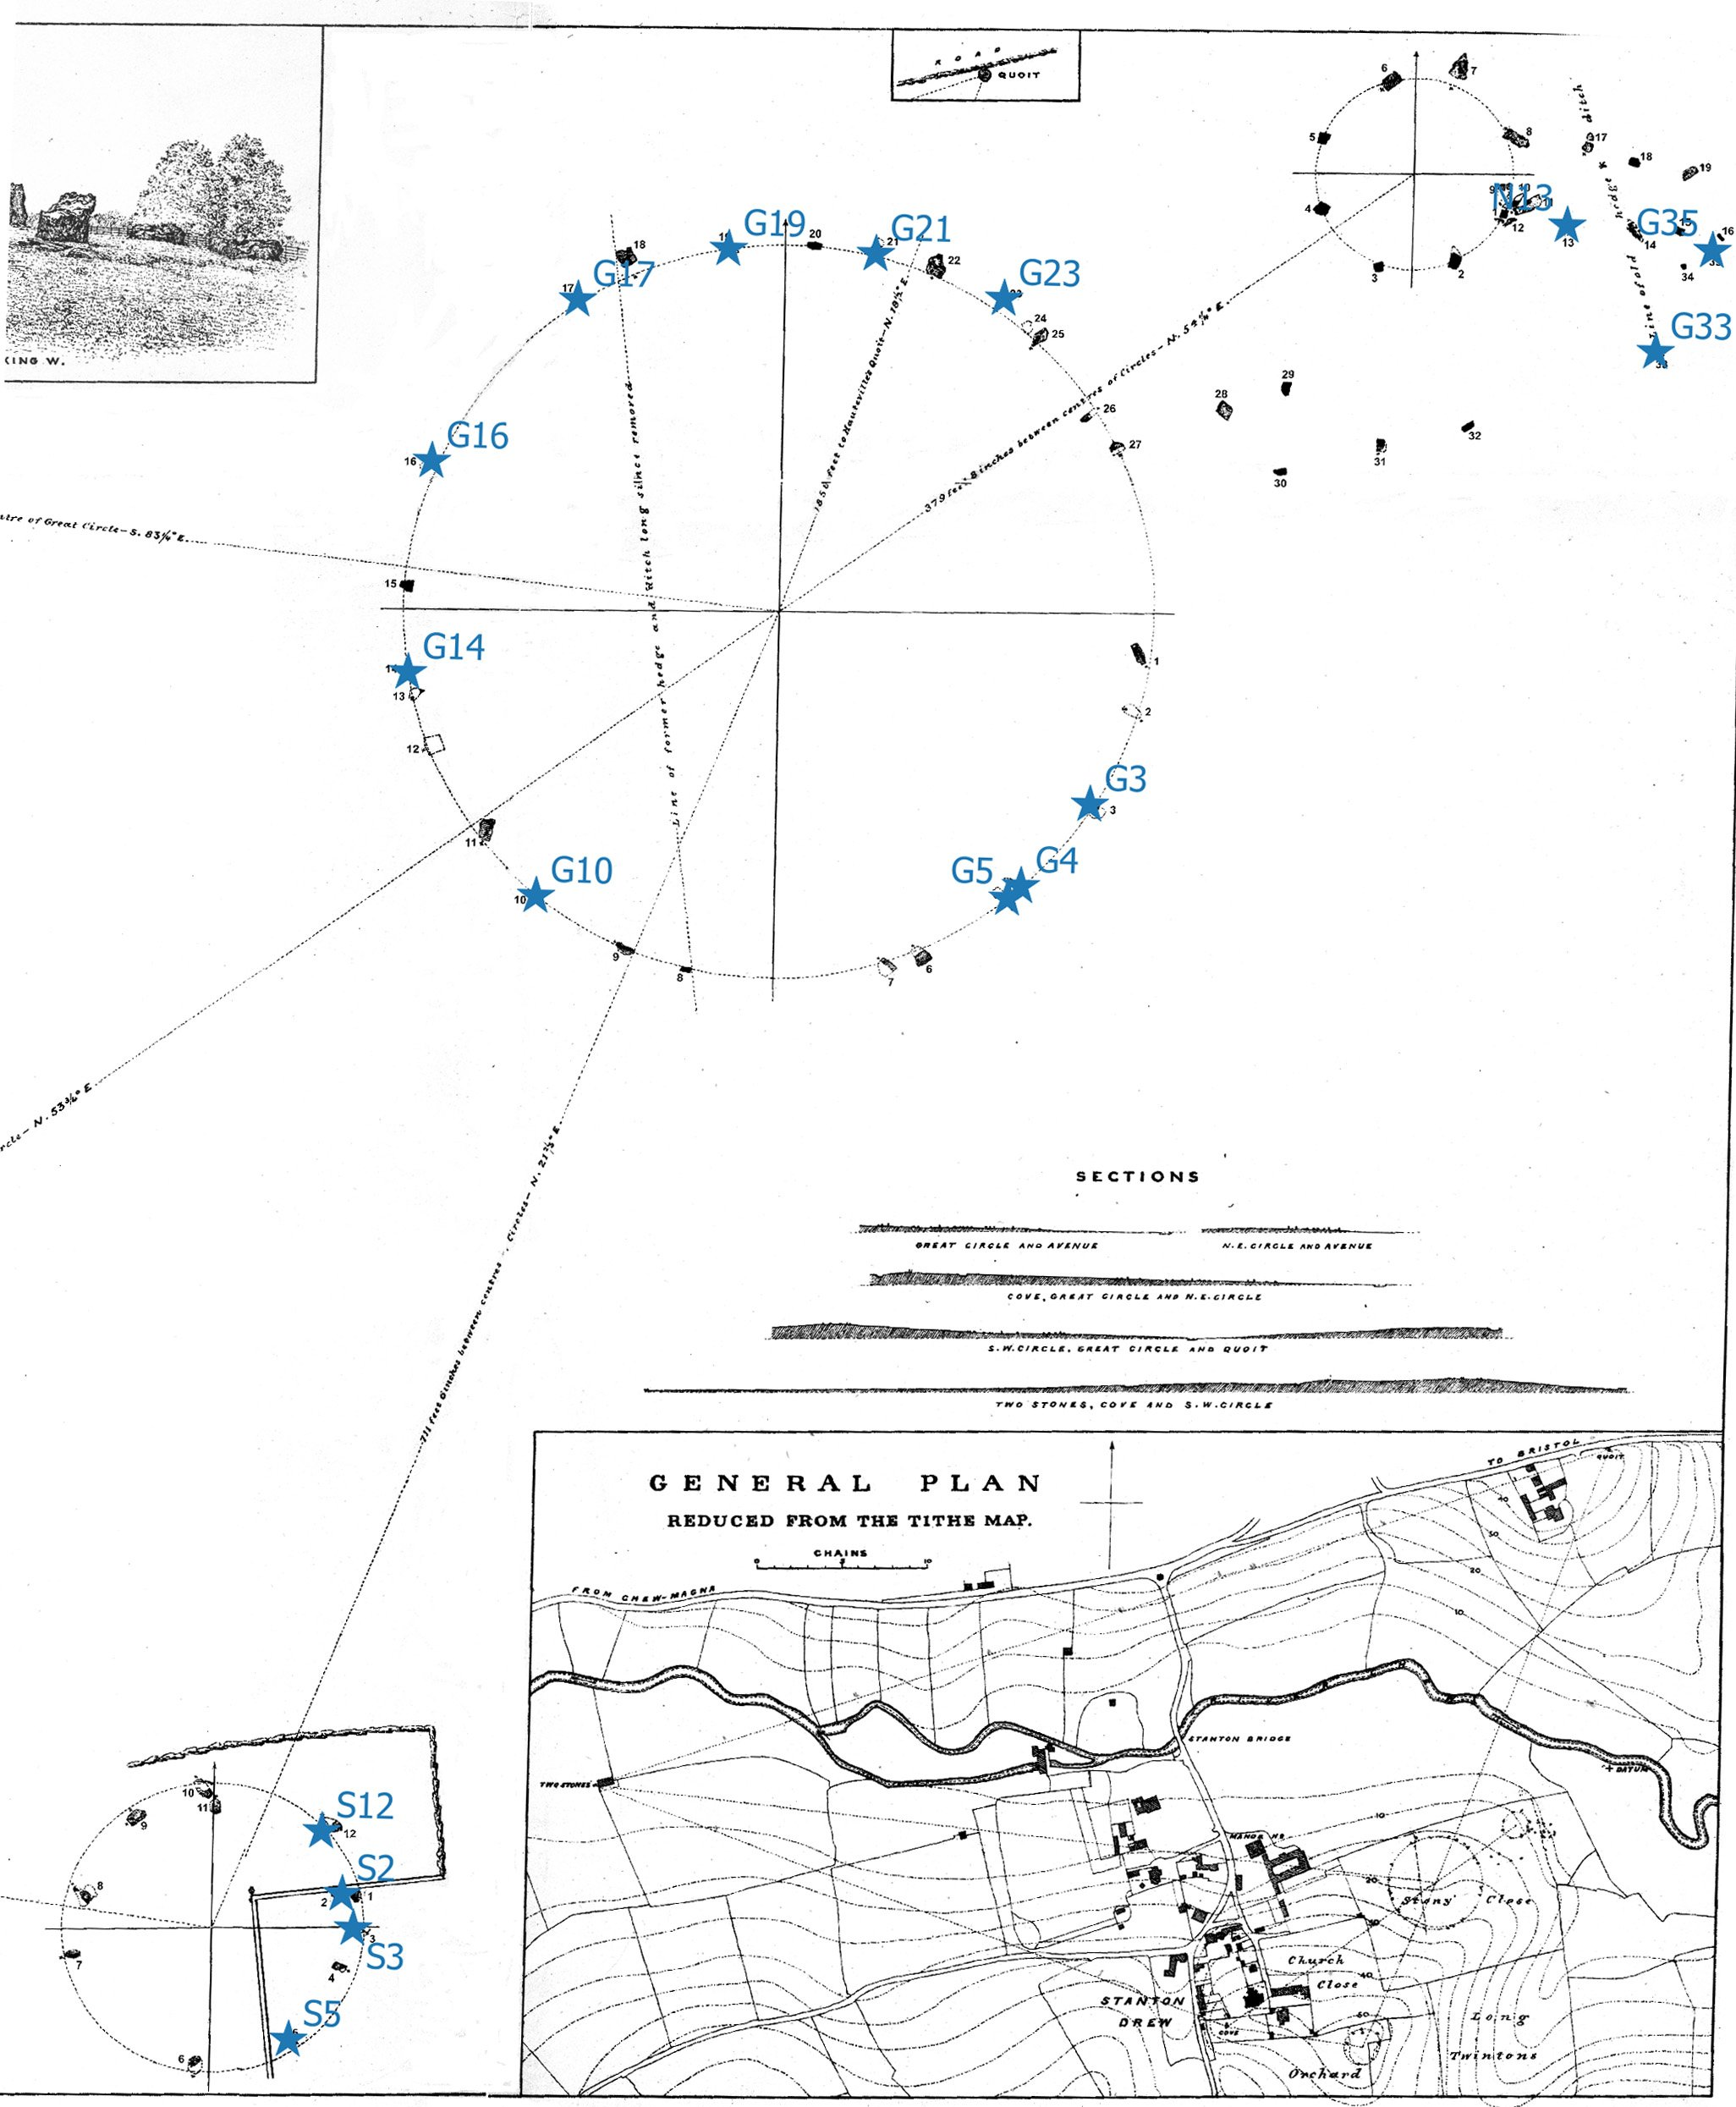 Dymond's 1896 plan with cleaned stones marked with stars